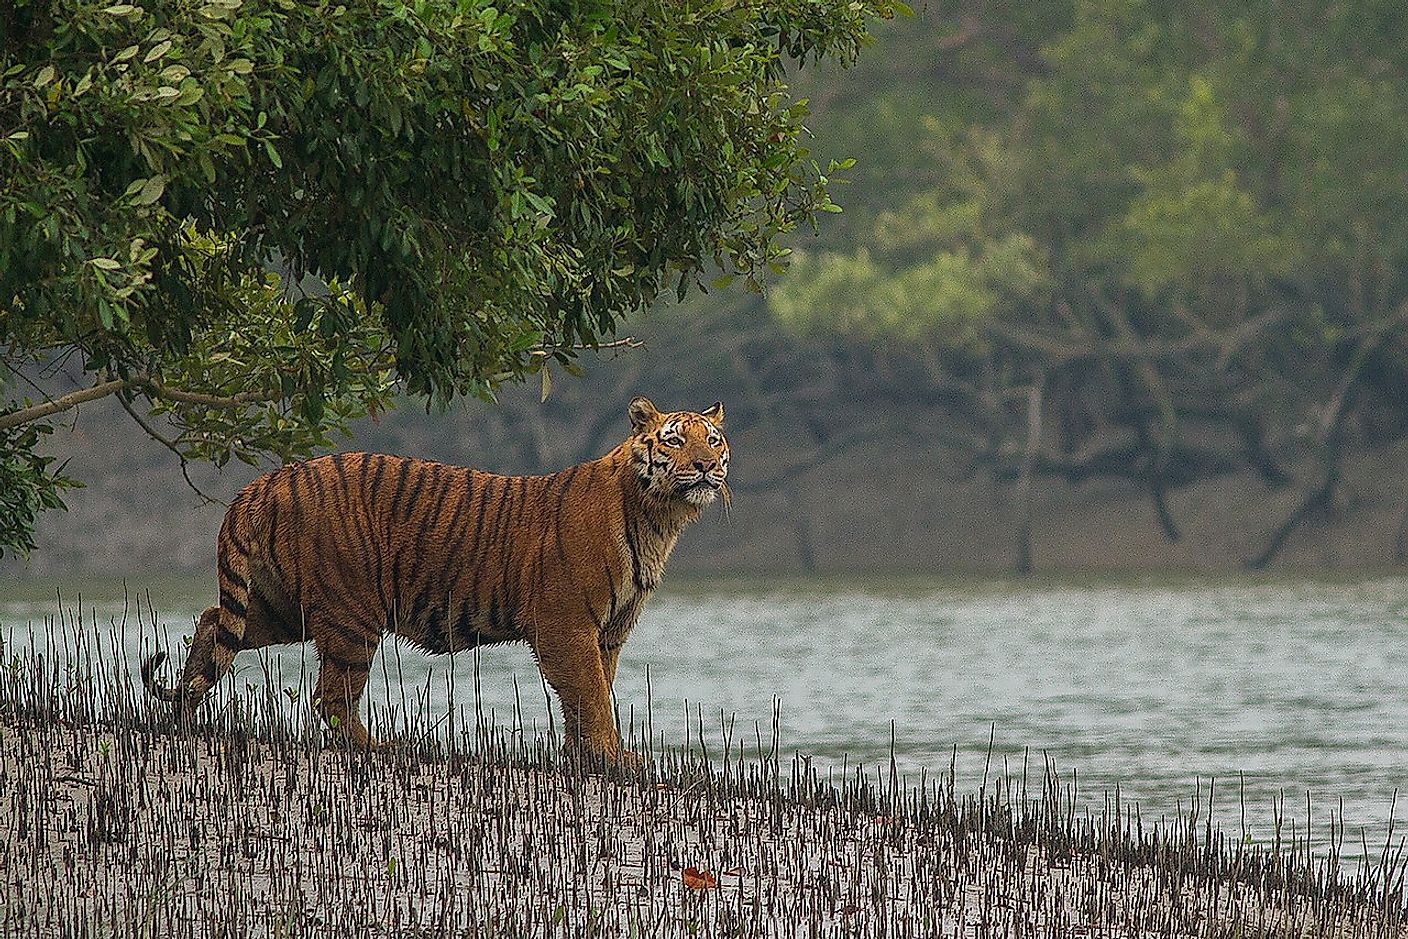 The Sundarbans mangroves of India and Bangladesh is the only mangrove forest known to host a tiger population. Image credit: Soumyajit Nandy/Shutterstock.com